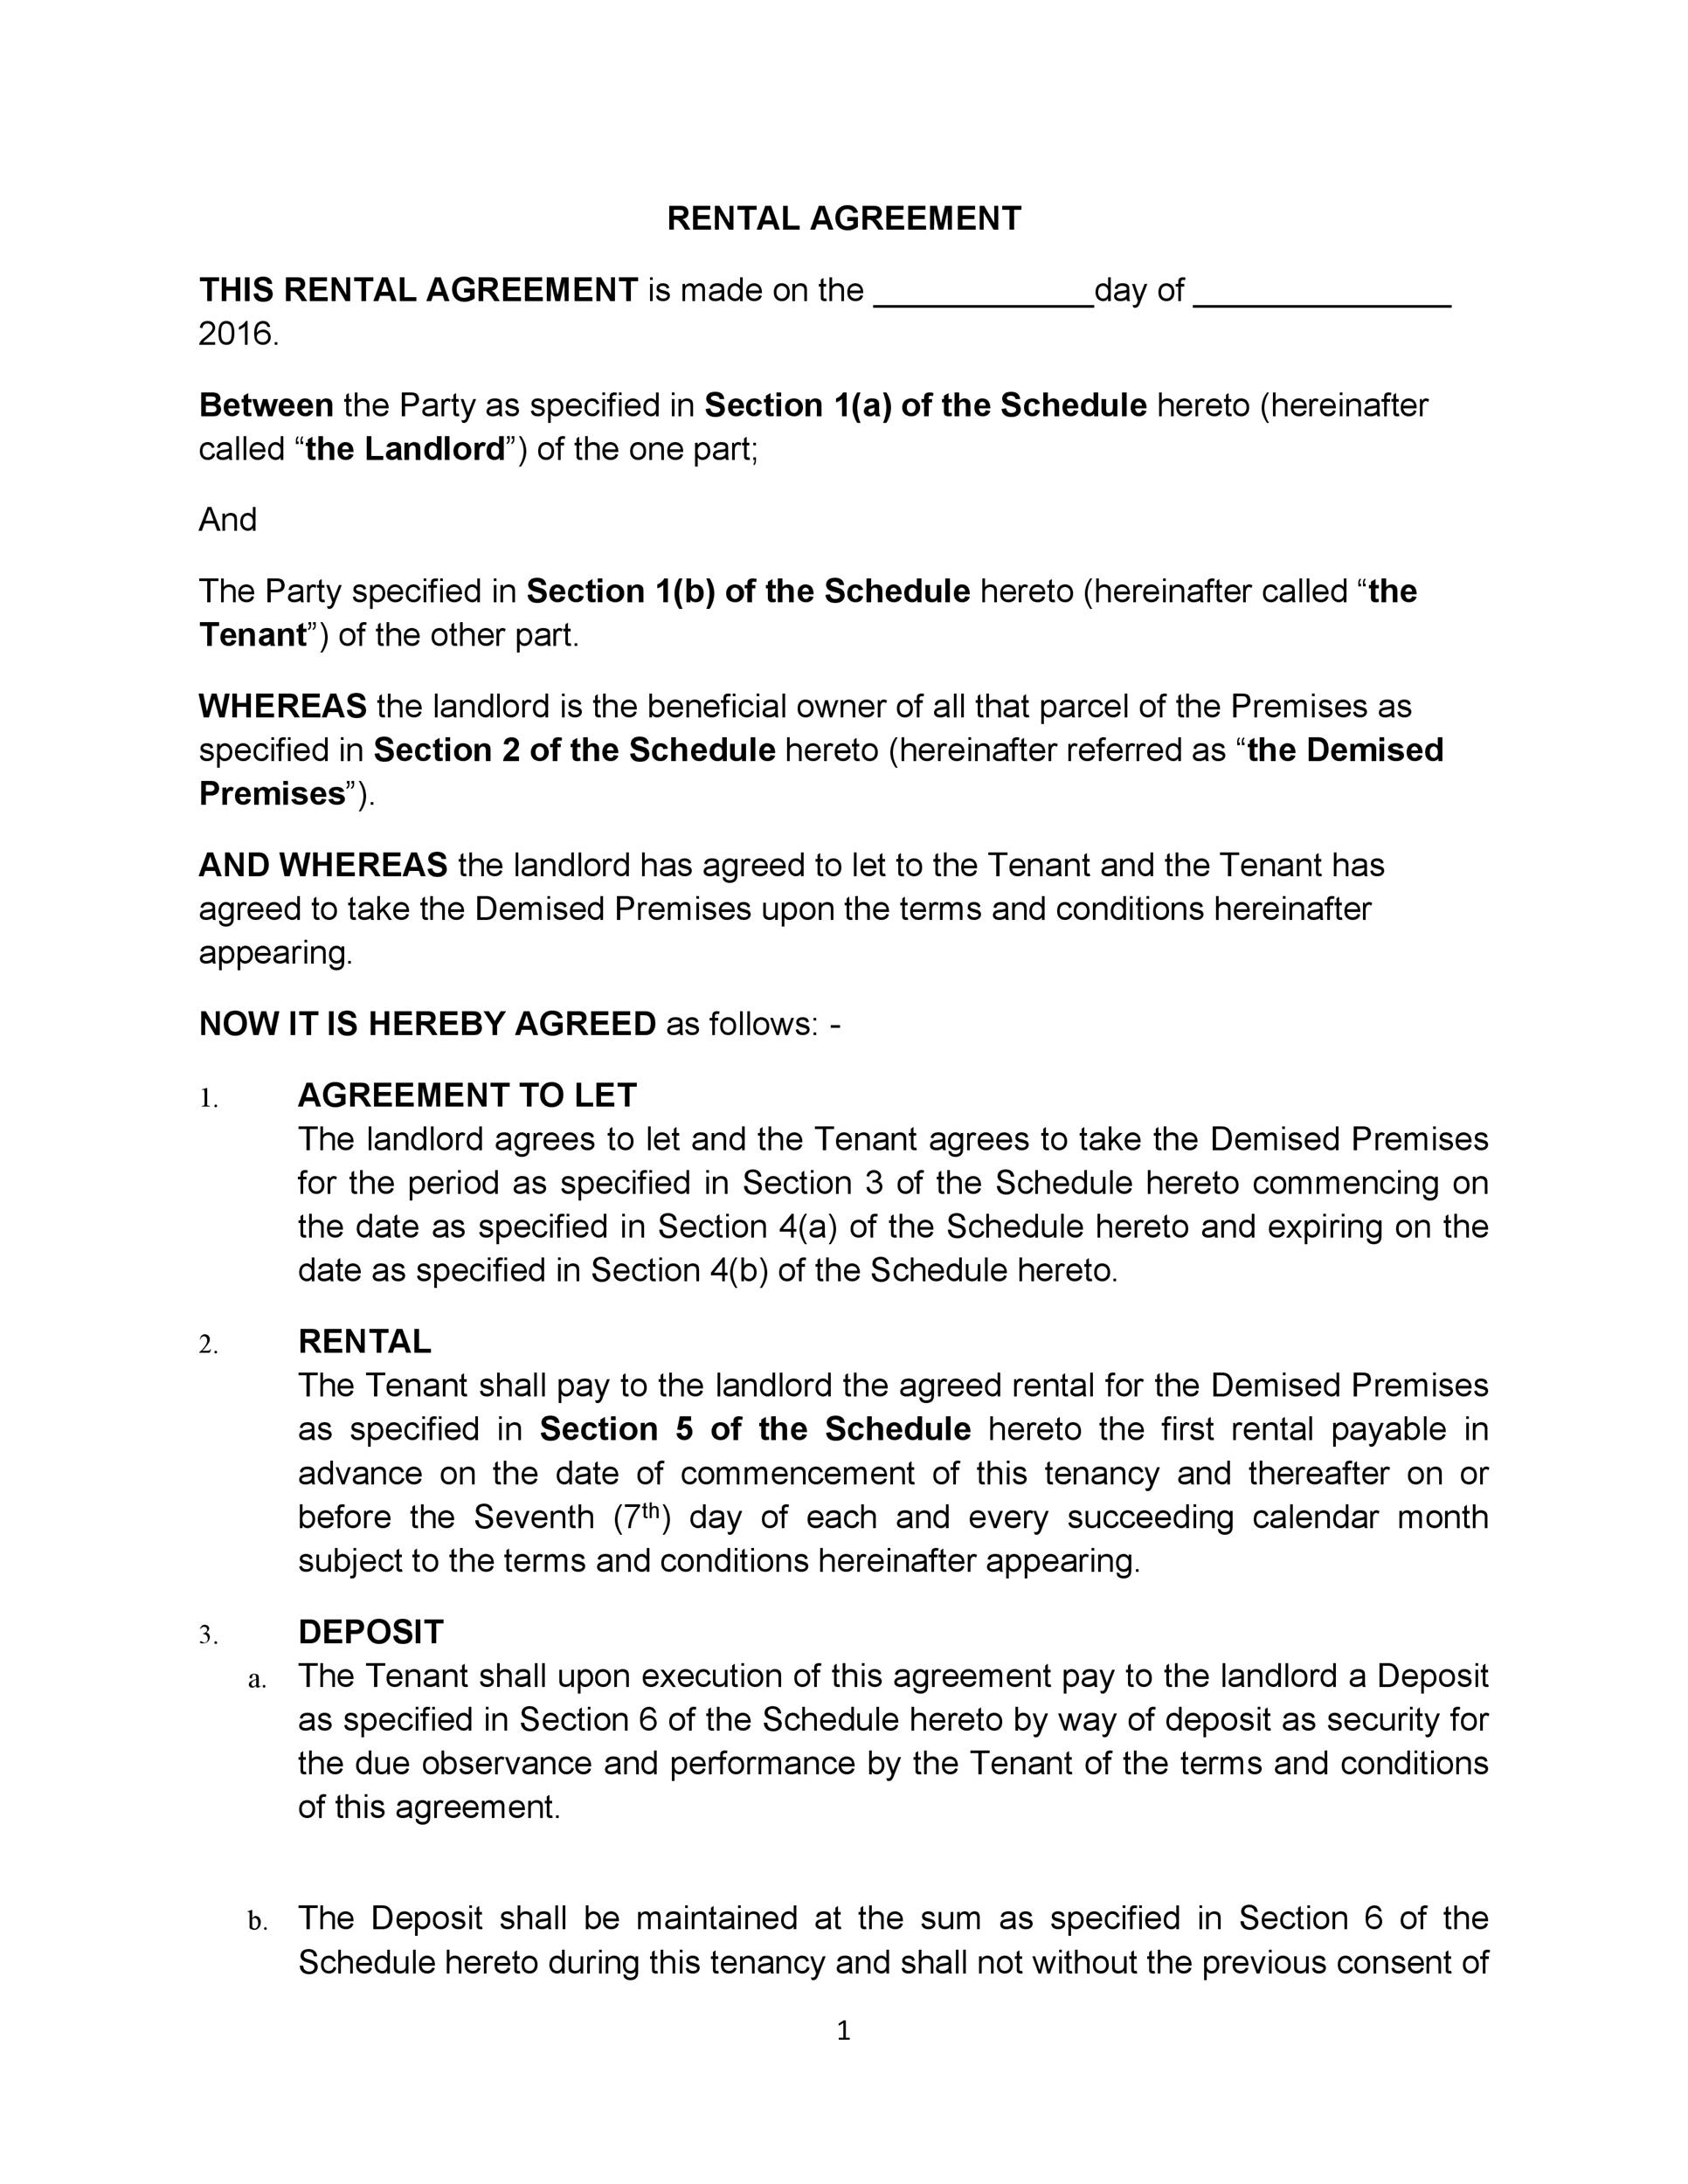 Rental Agreement Letter Template. Example Of Lease Agreement